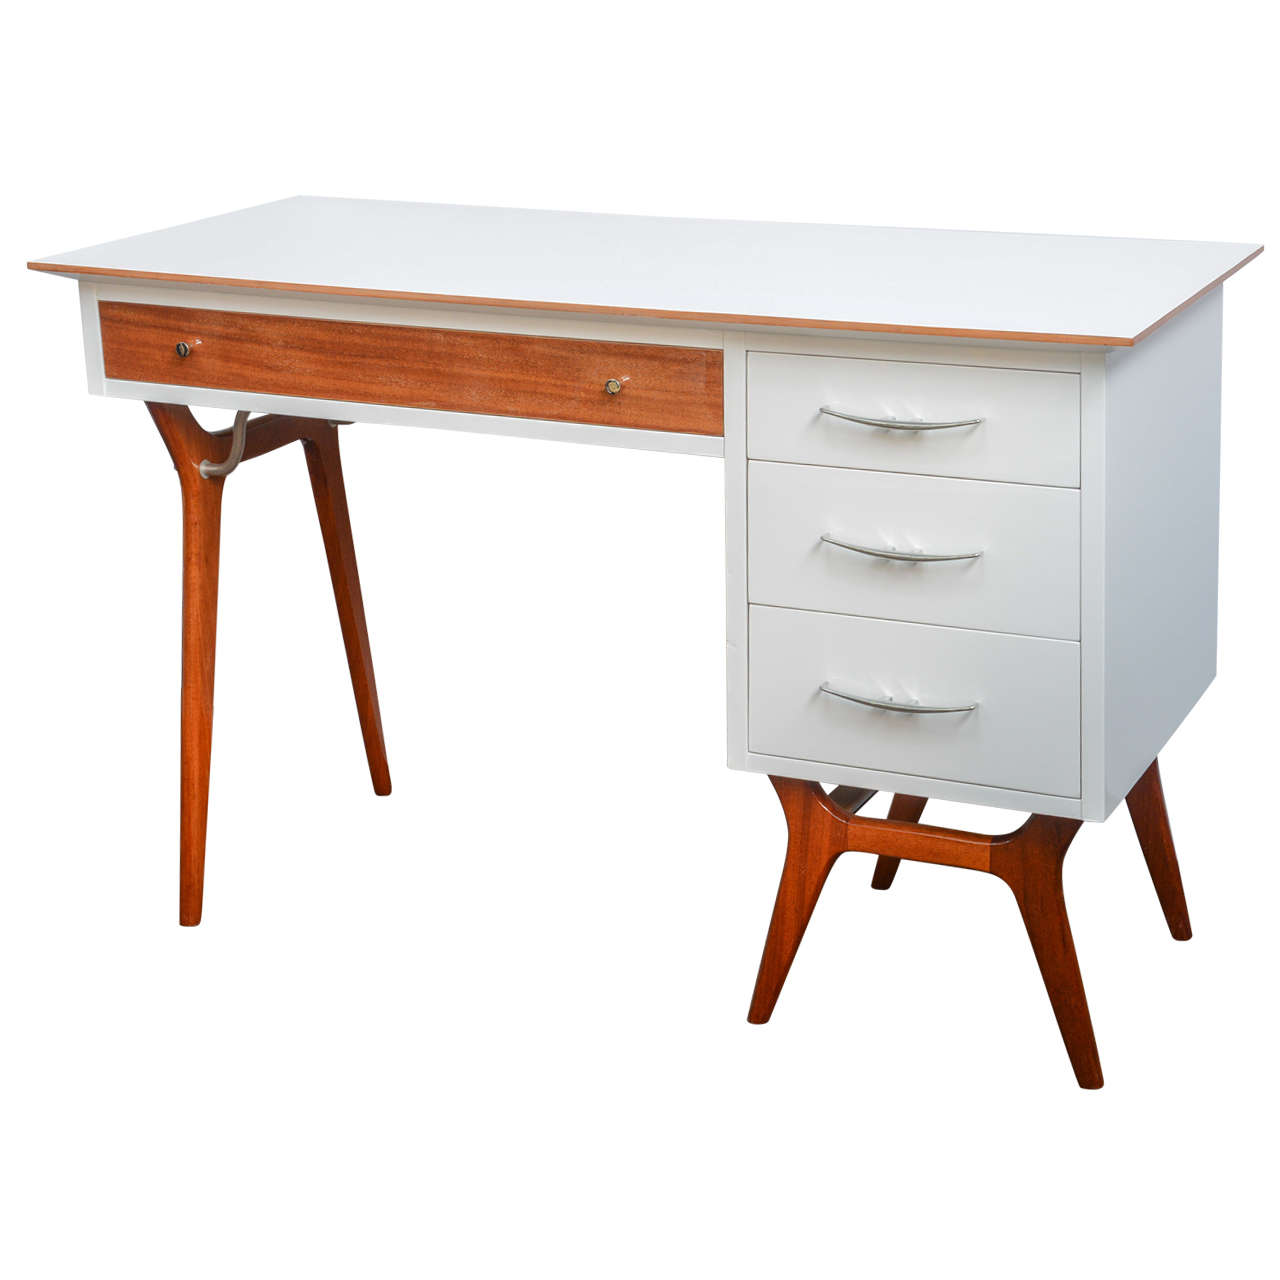 Mid-Century Teak and White Lacquered Desk by R-Way